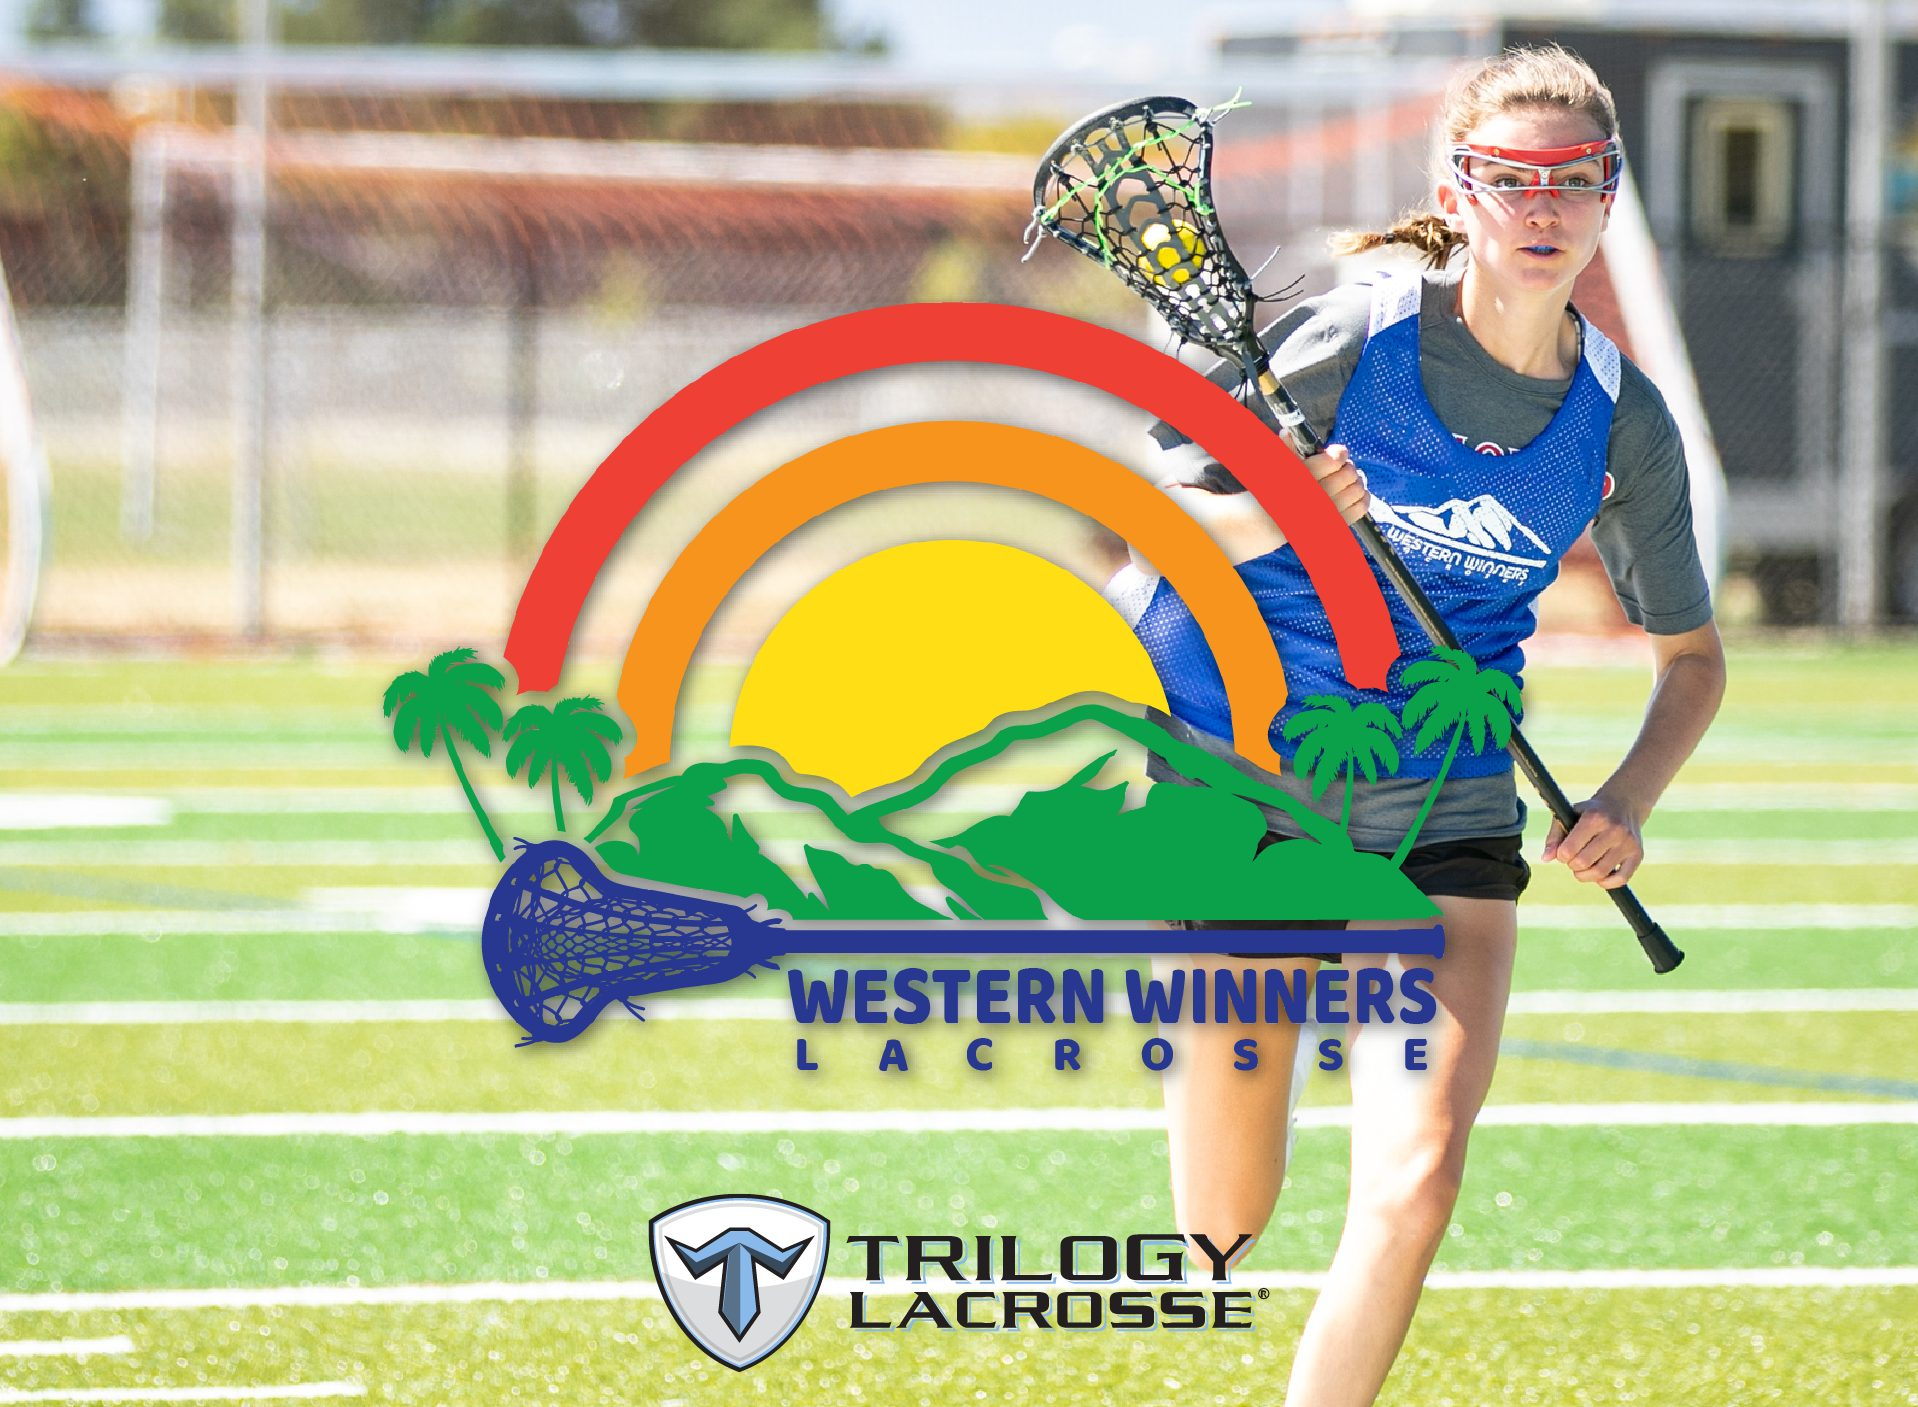 Trilogy Lacrosse Adds Western Winners Girls Showcase to Recruiting Event Lineup